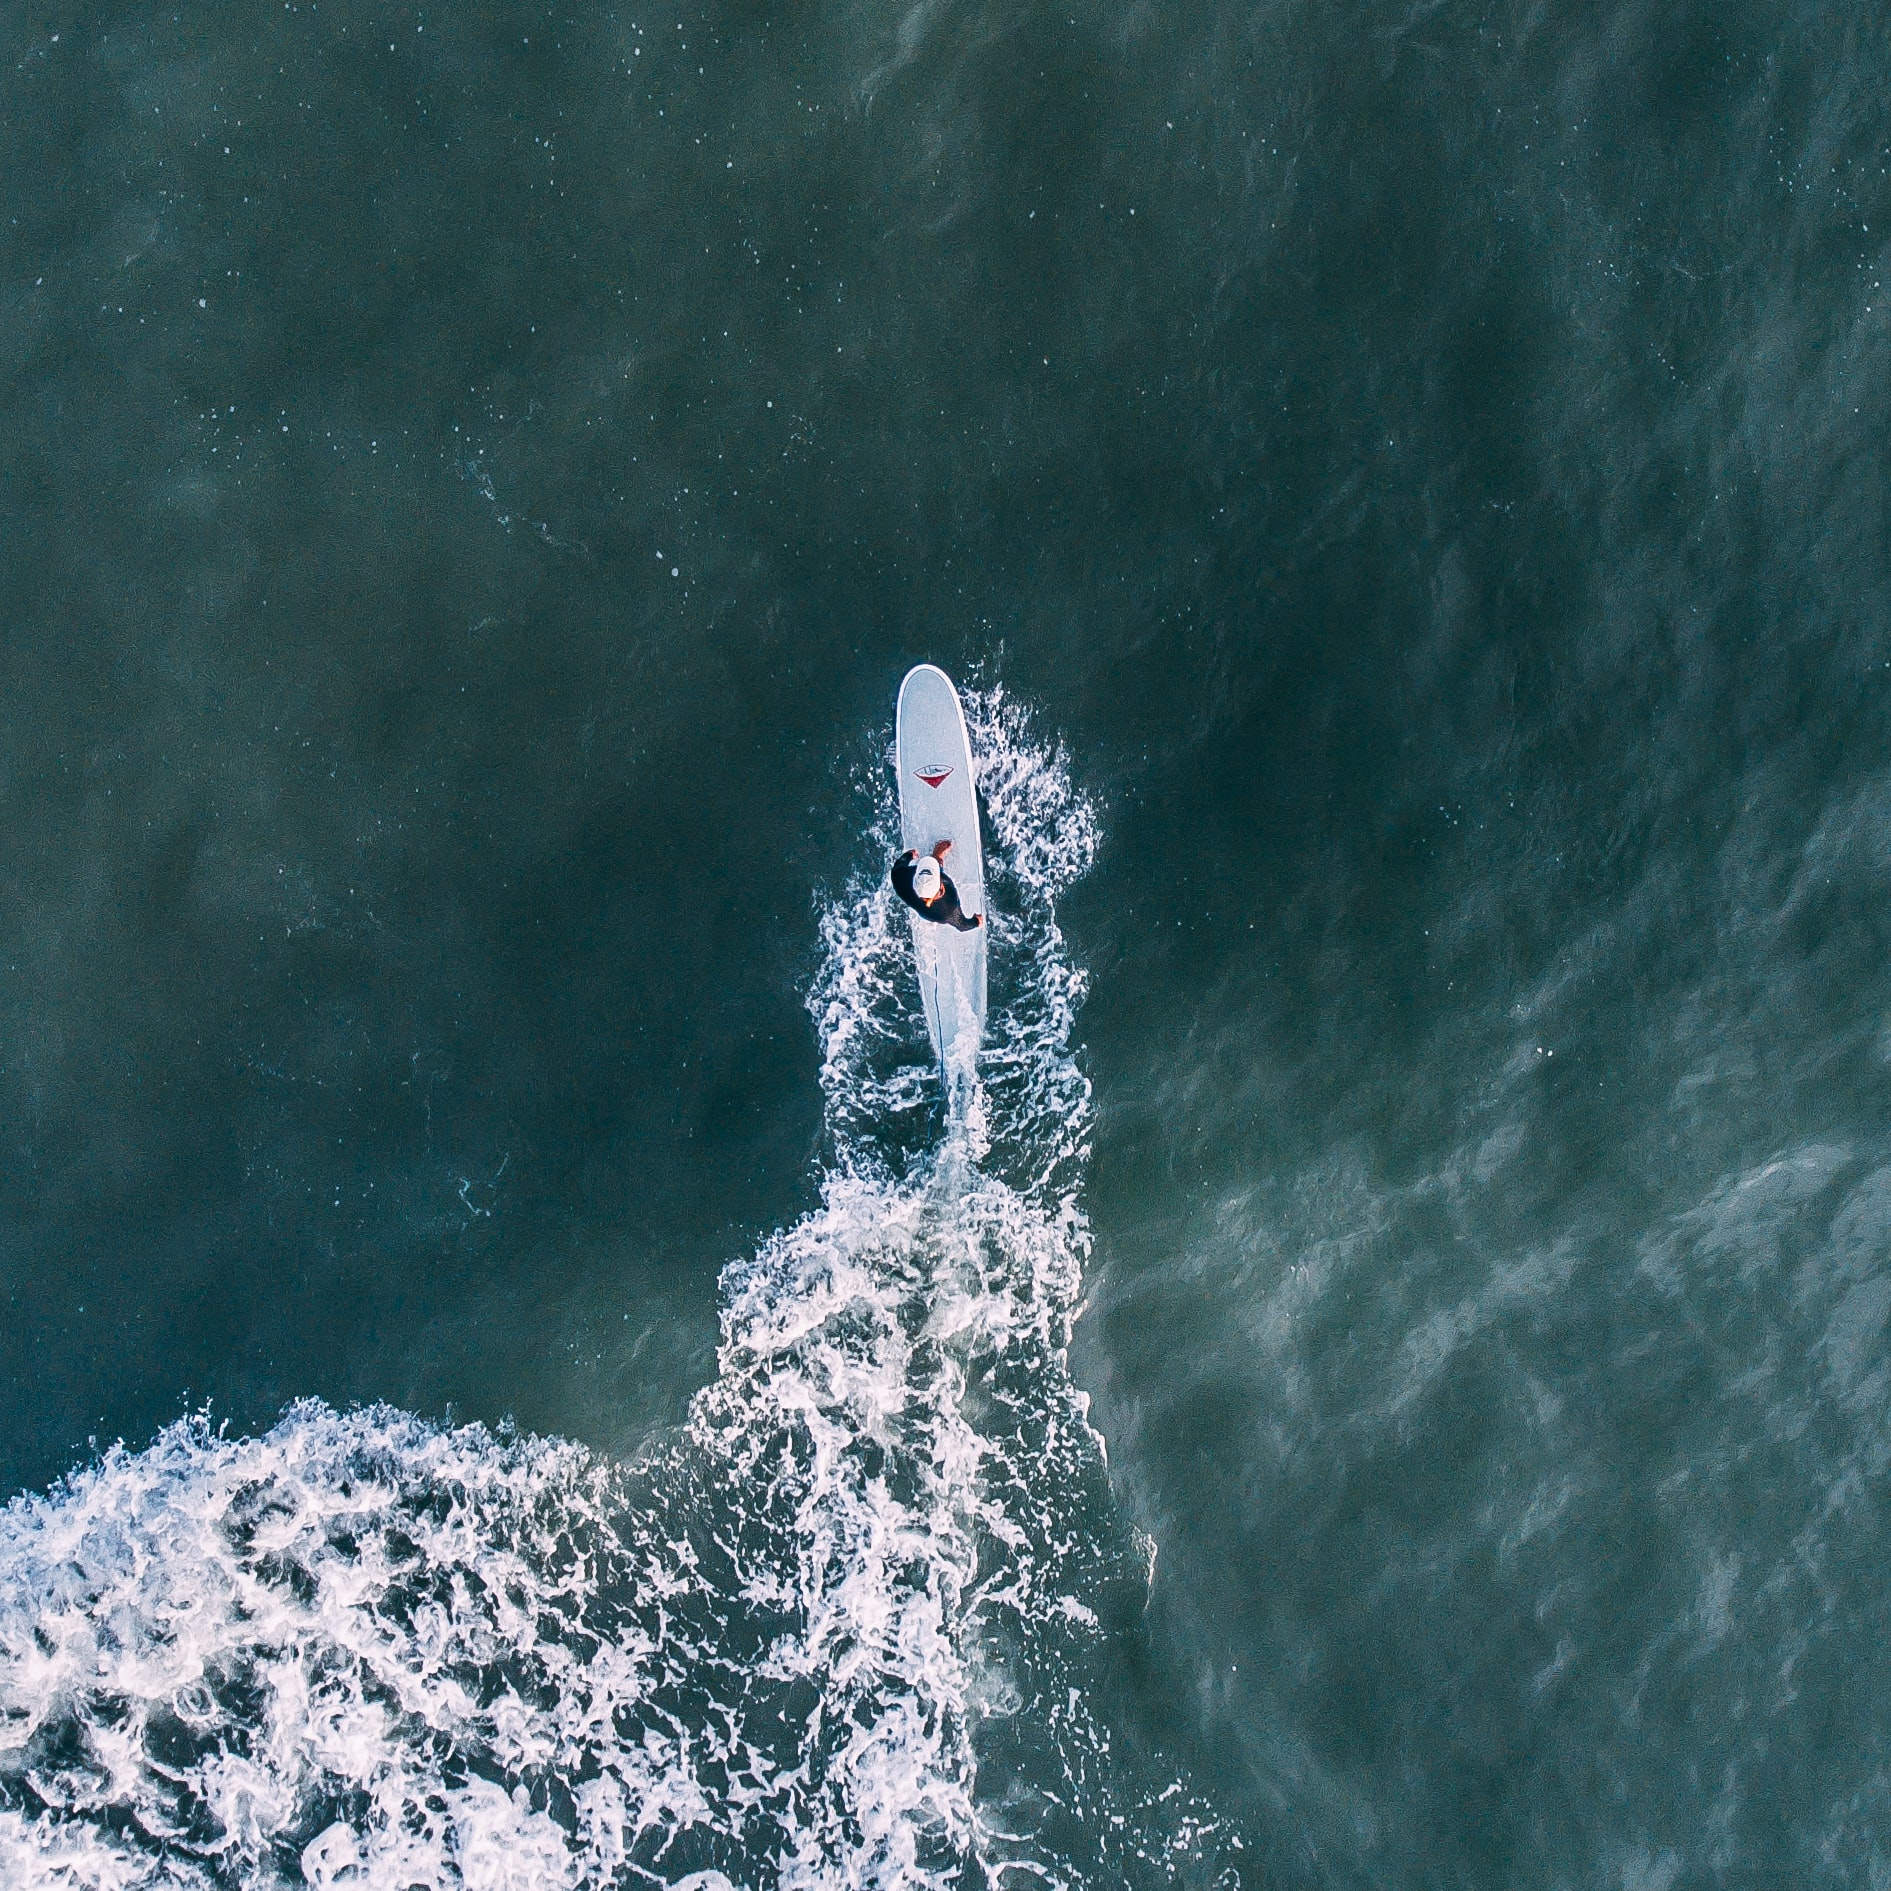 Drone view of a surfer on a surfboard in ocean at Beaches, Jacksonville Beach, Florida, United States